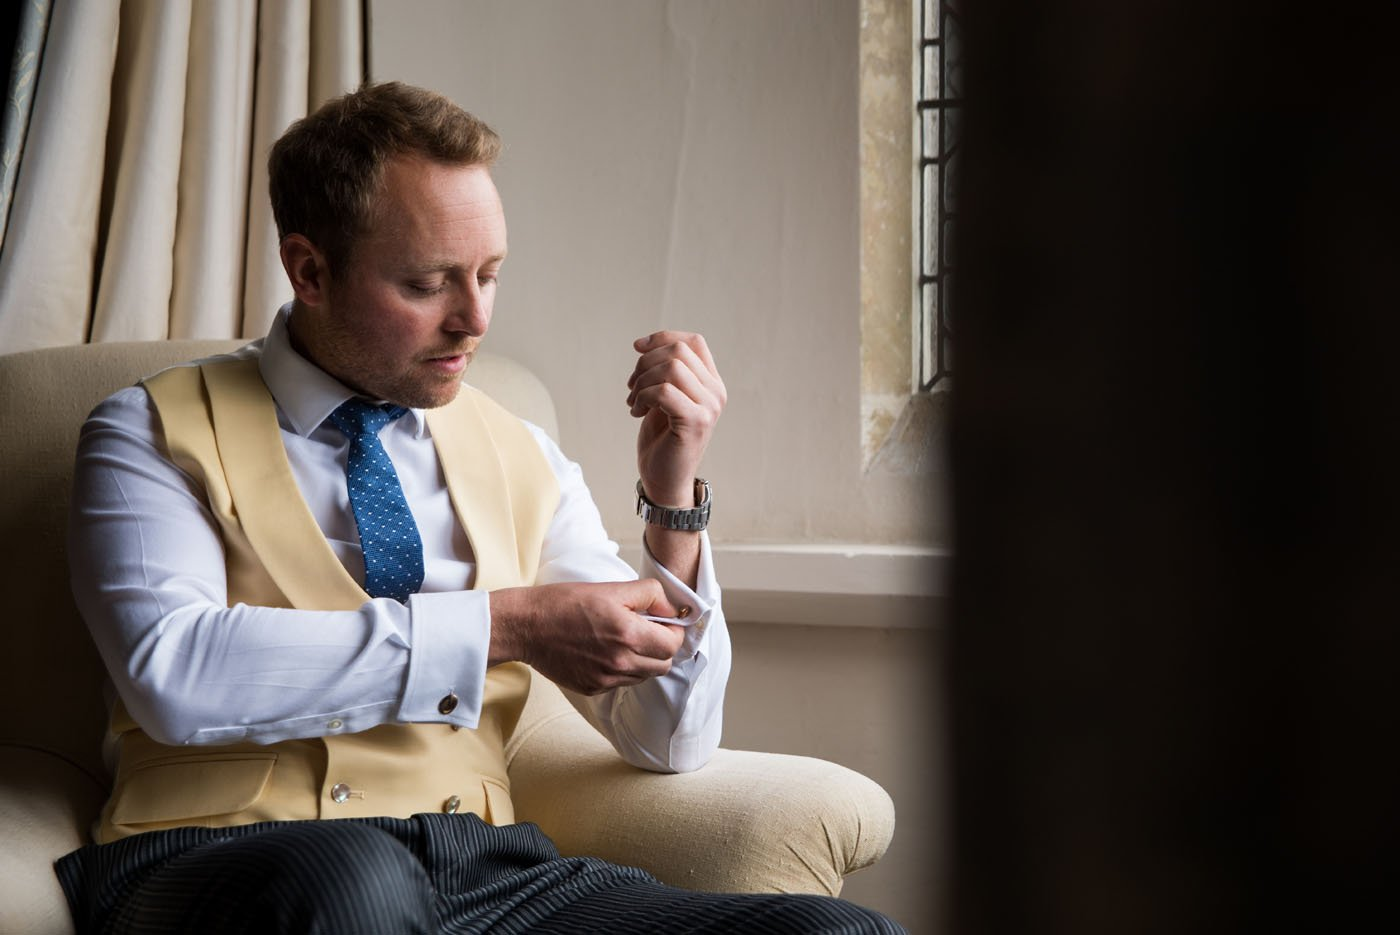 Groom in a mustard waistcoat and blue tie buttons up his cufflinks